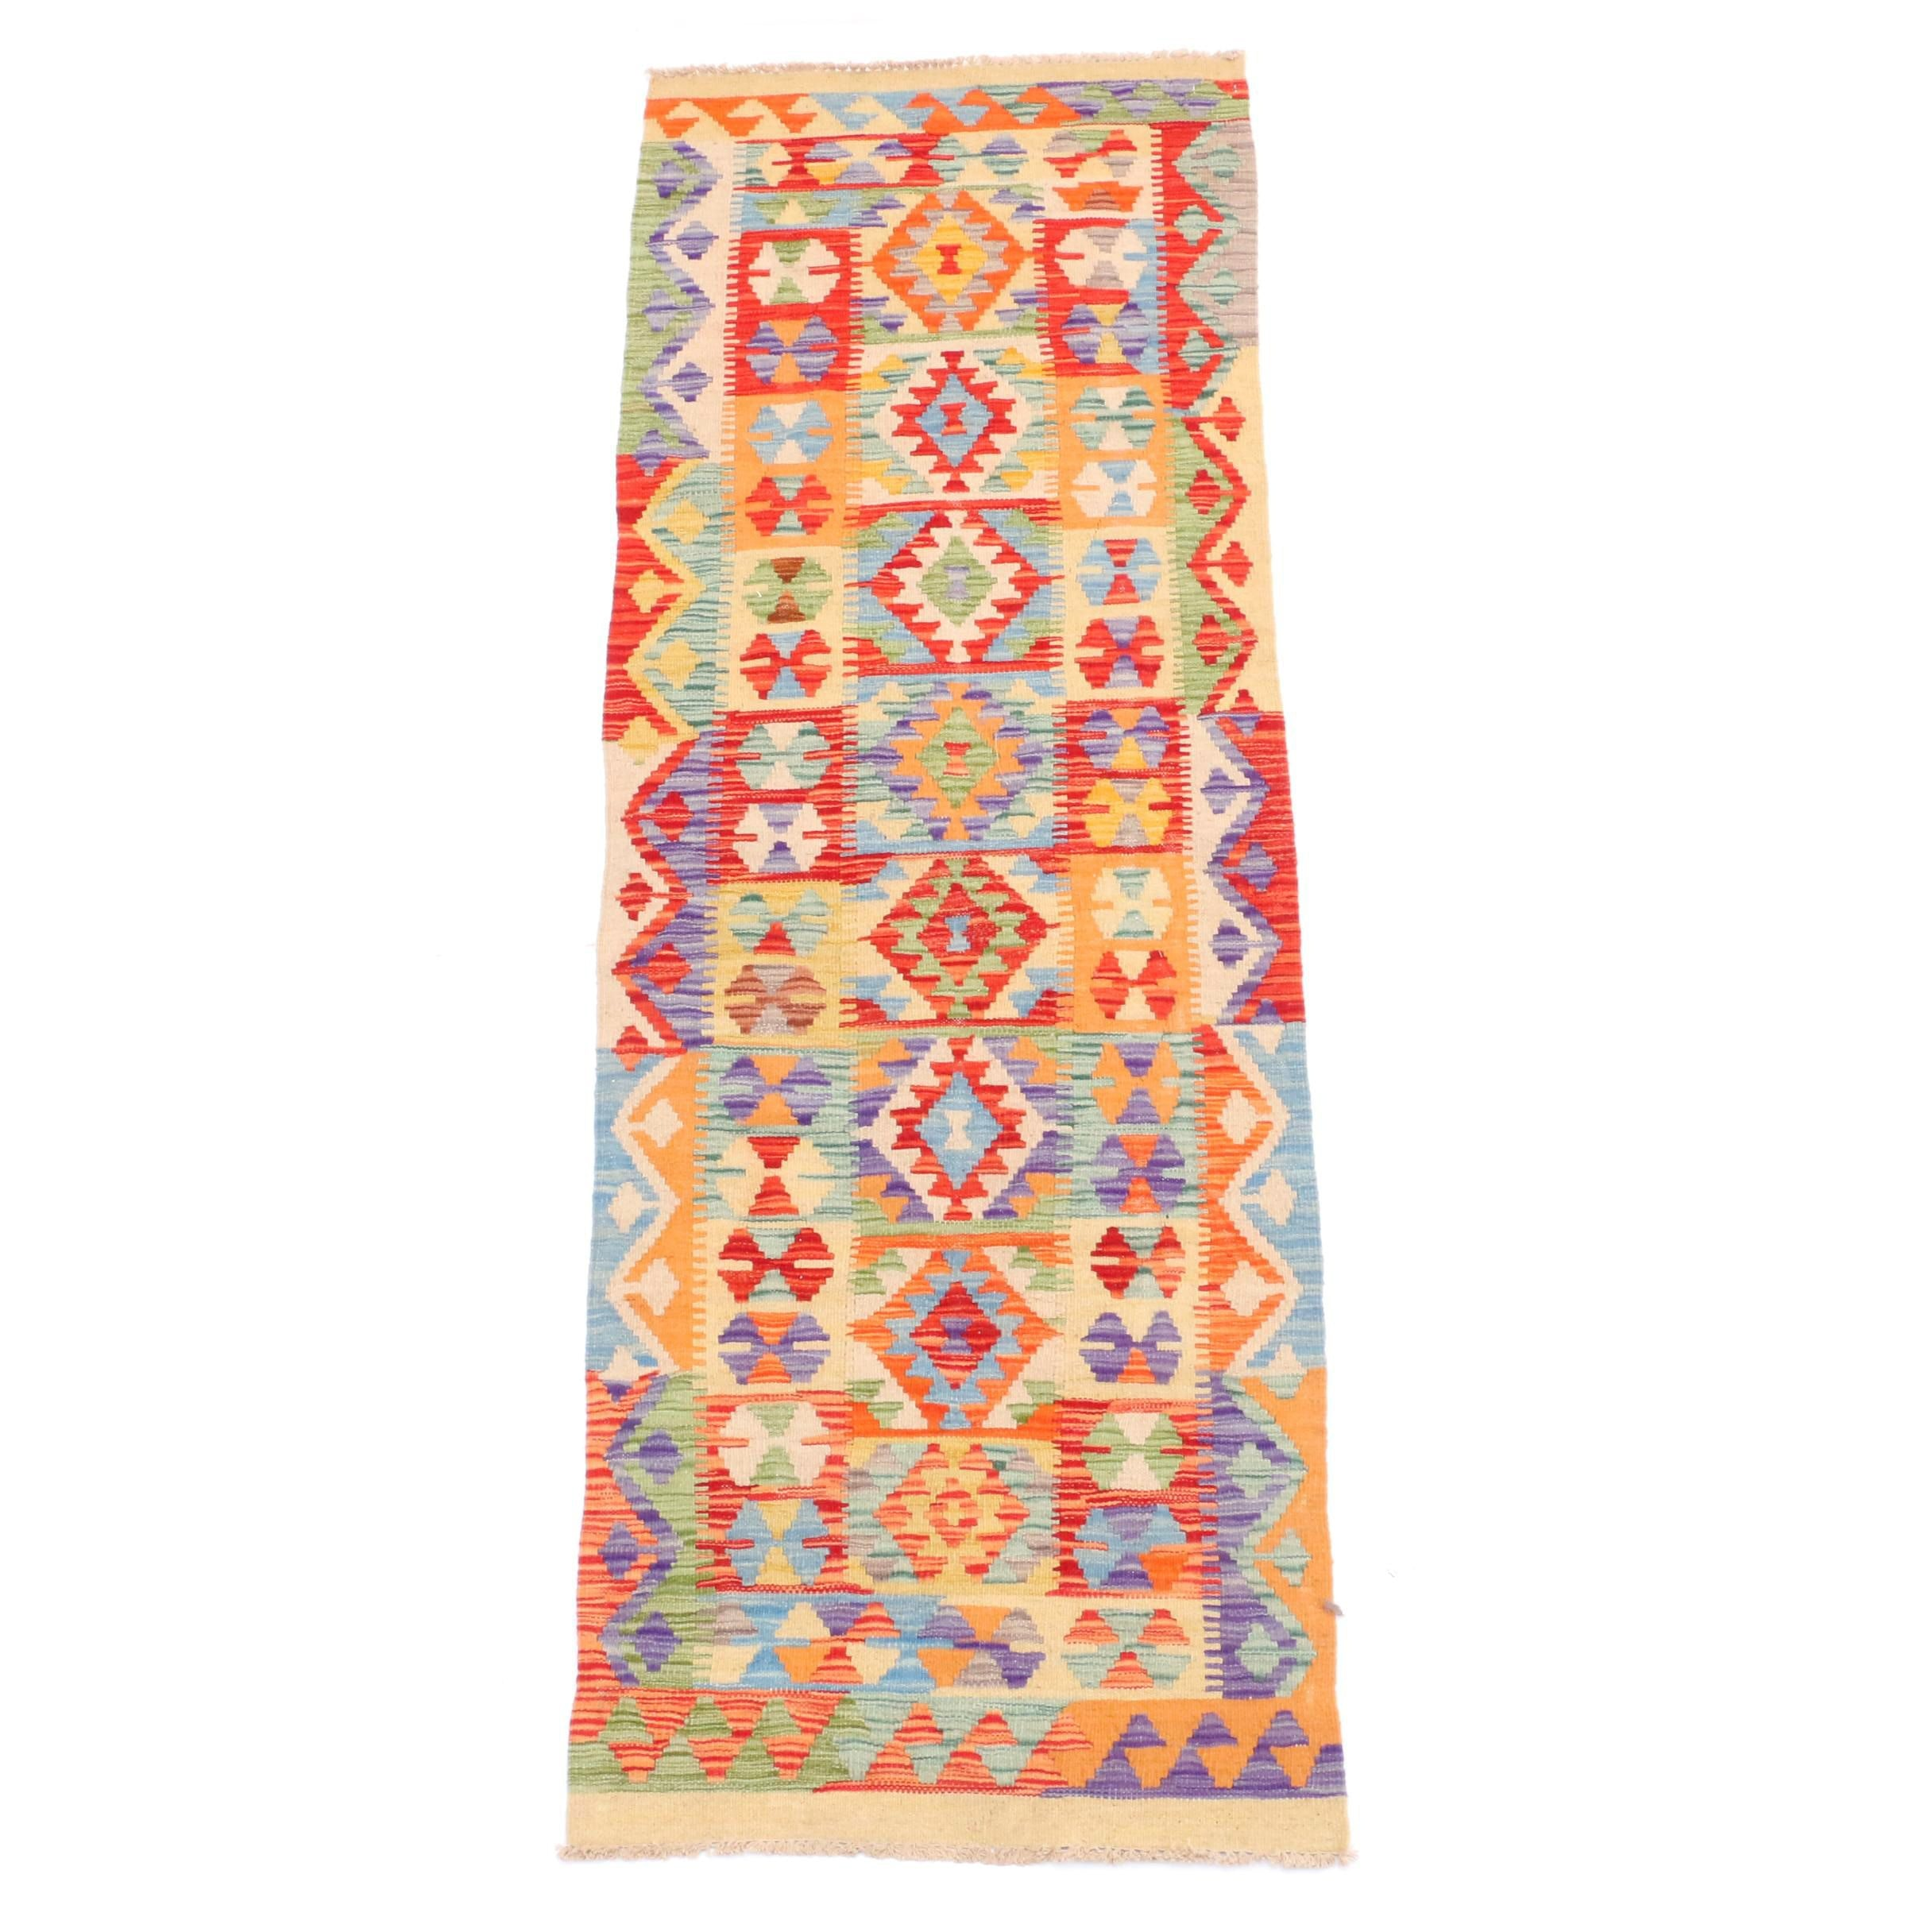 Handwoven Indo-Turkish Wool Kilim Runner